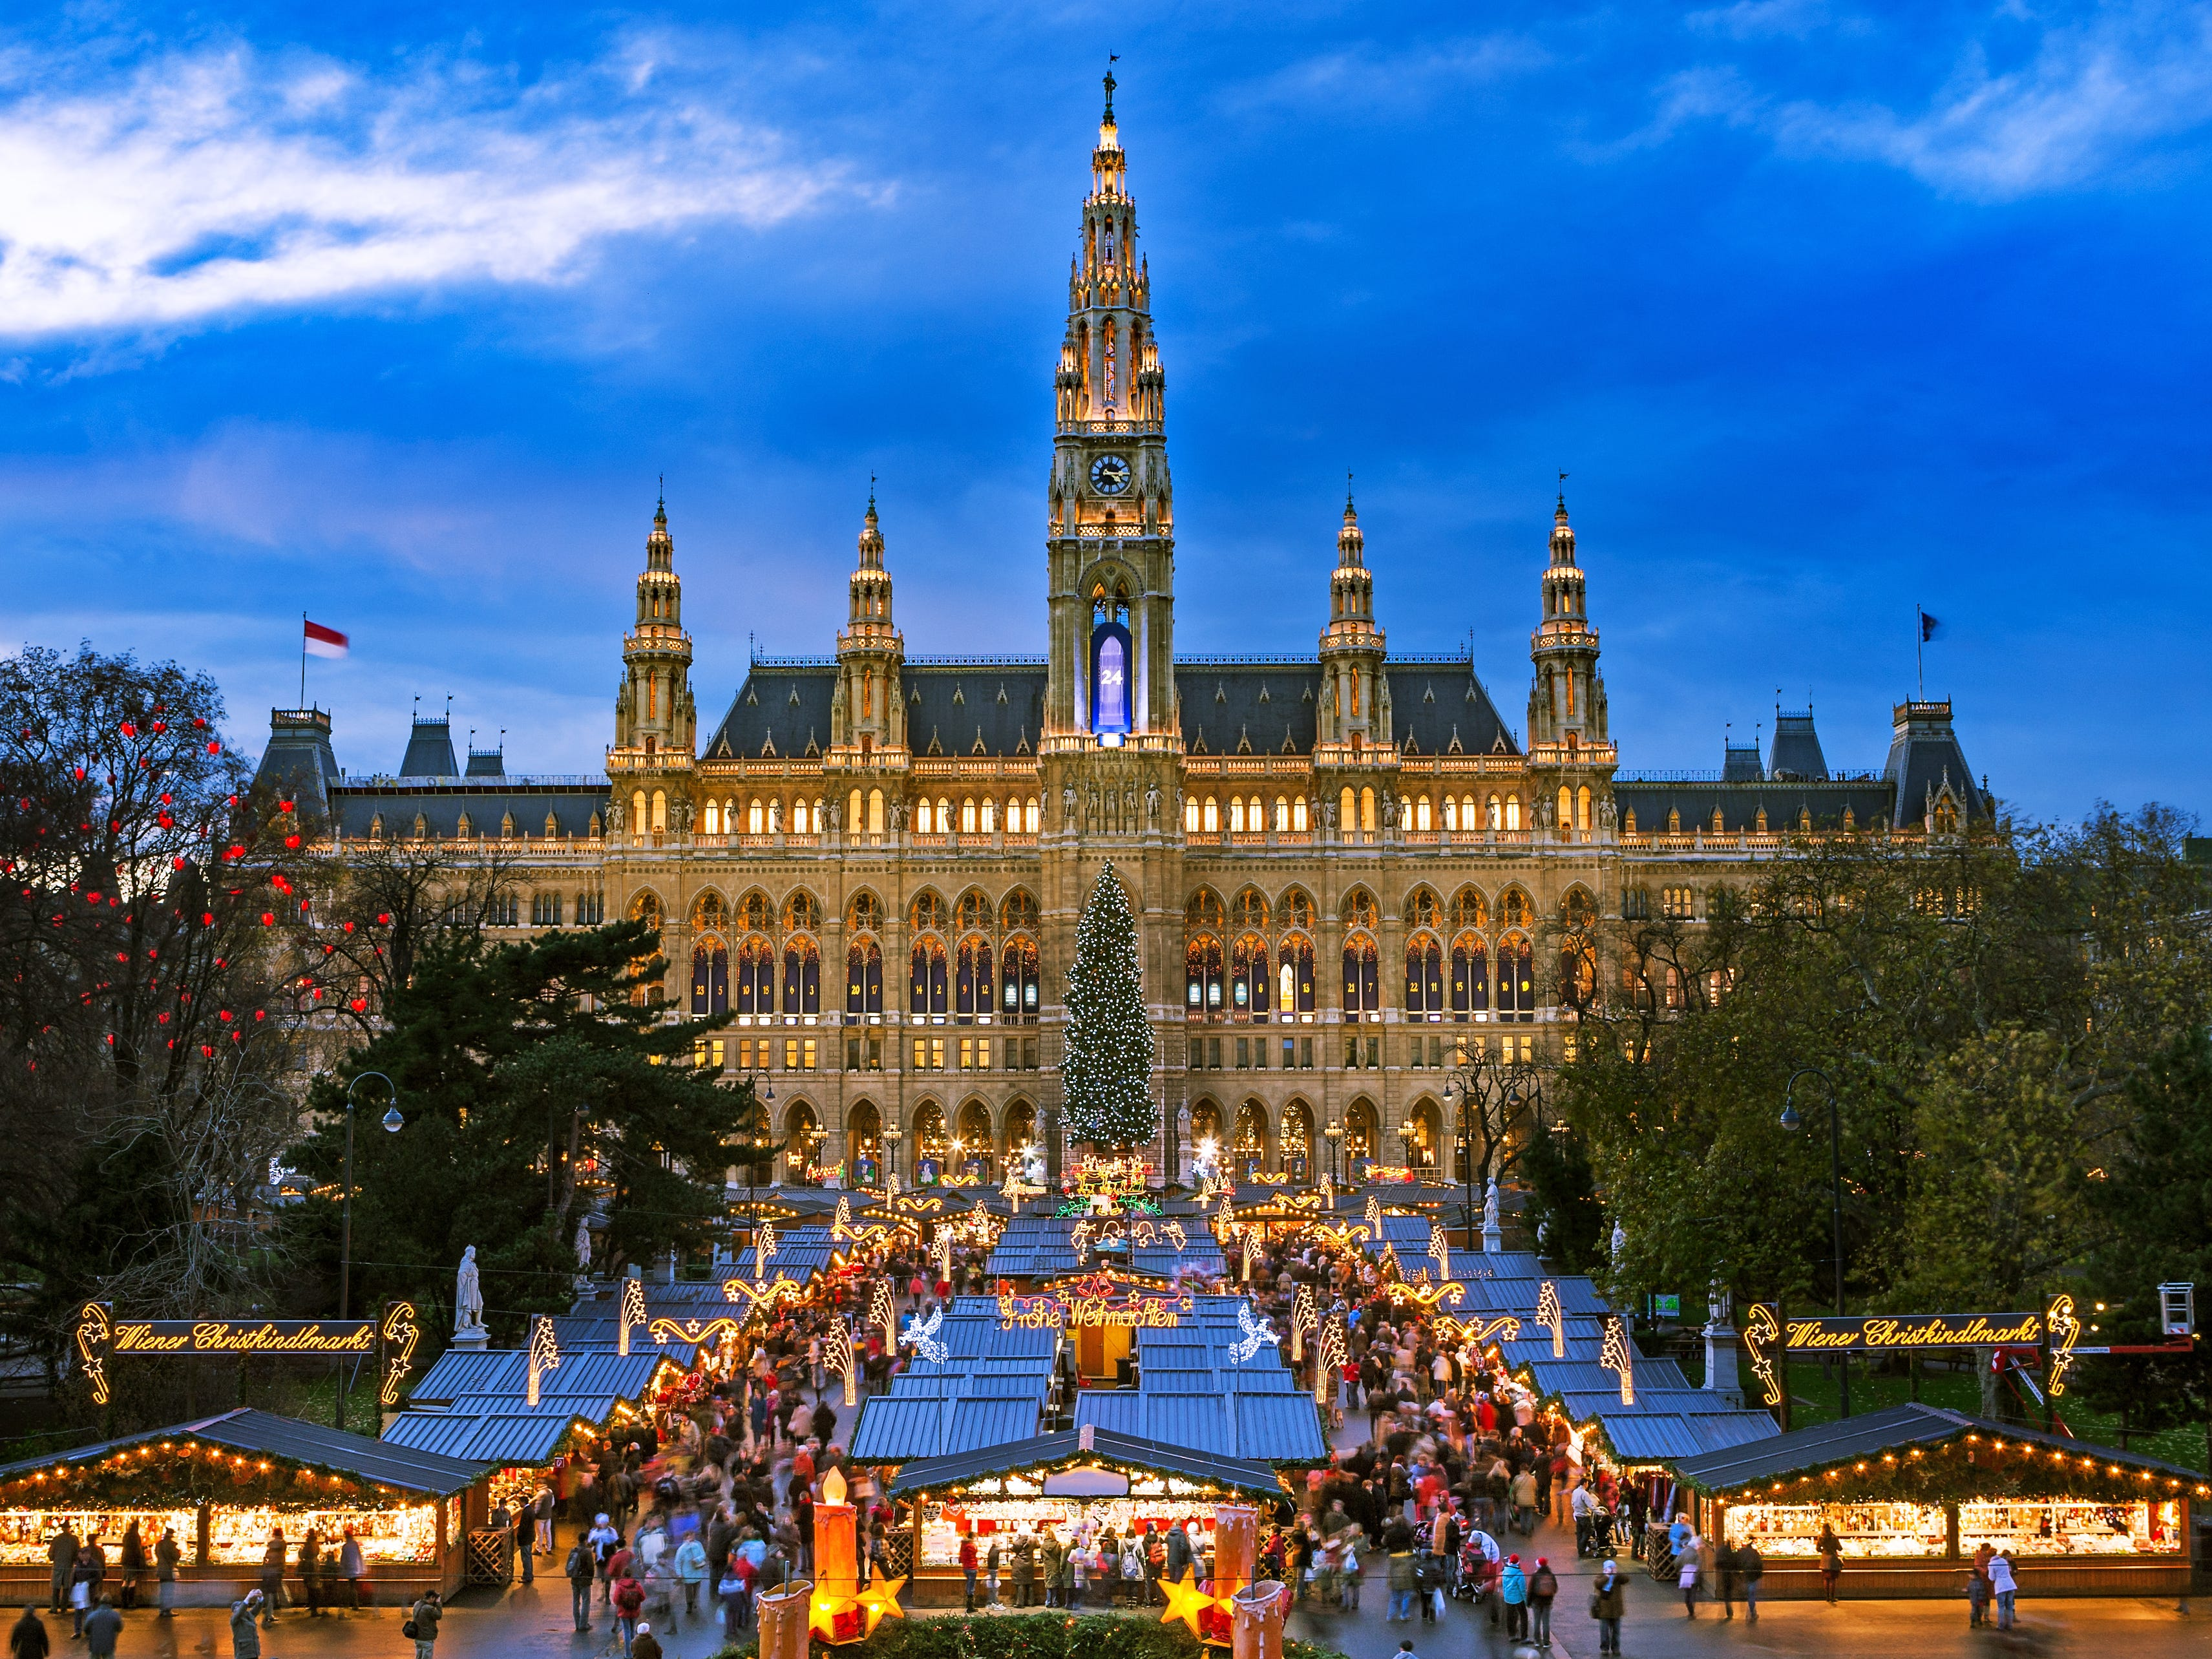 Austria: With round-trip flights from Boston, Chicago and Baltimore to Vienna at near-historic lows — like $500 low, as found on Airfarewatchdog — this popular skiing country in Europe makes for a great affordable winter vacation this year. The country embraces cold weather with famous Christmas markets, ice skating rinks, roasted chestnut and potato wedge stalls, mulled wine, and the best opera season.